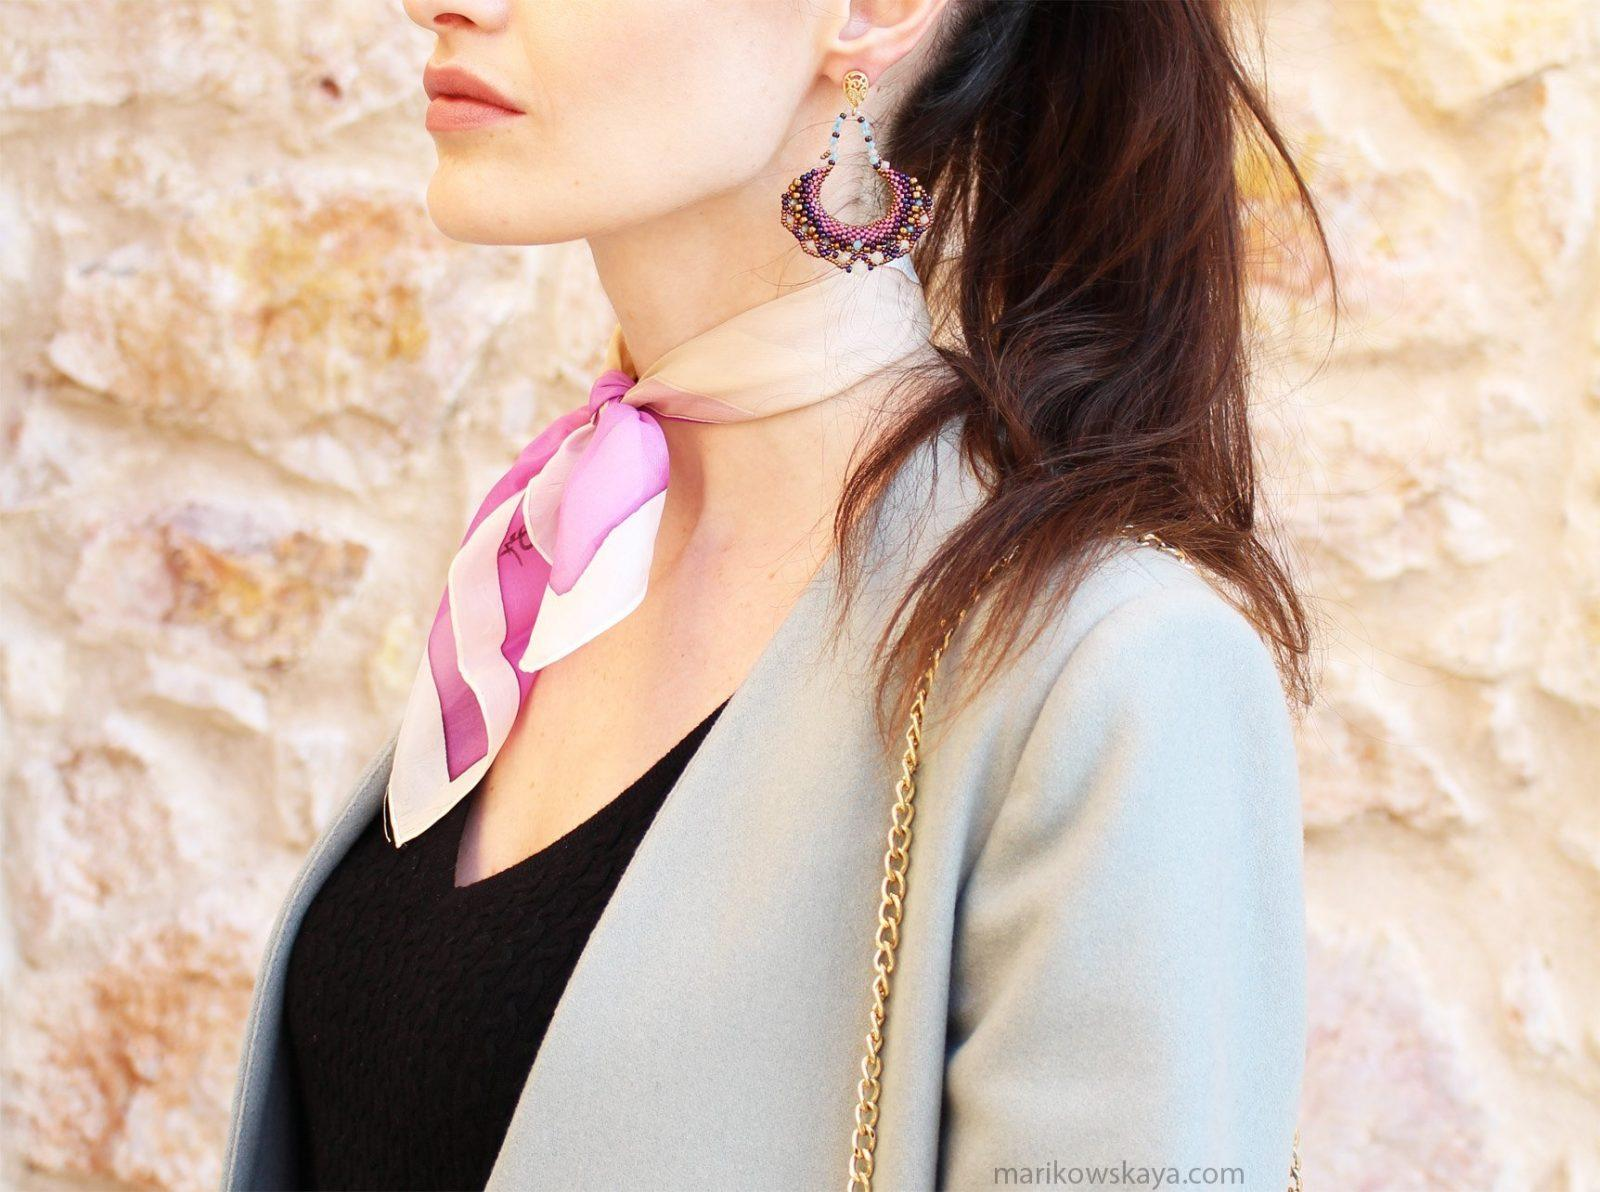 miss fashionista earrings 11